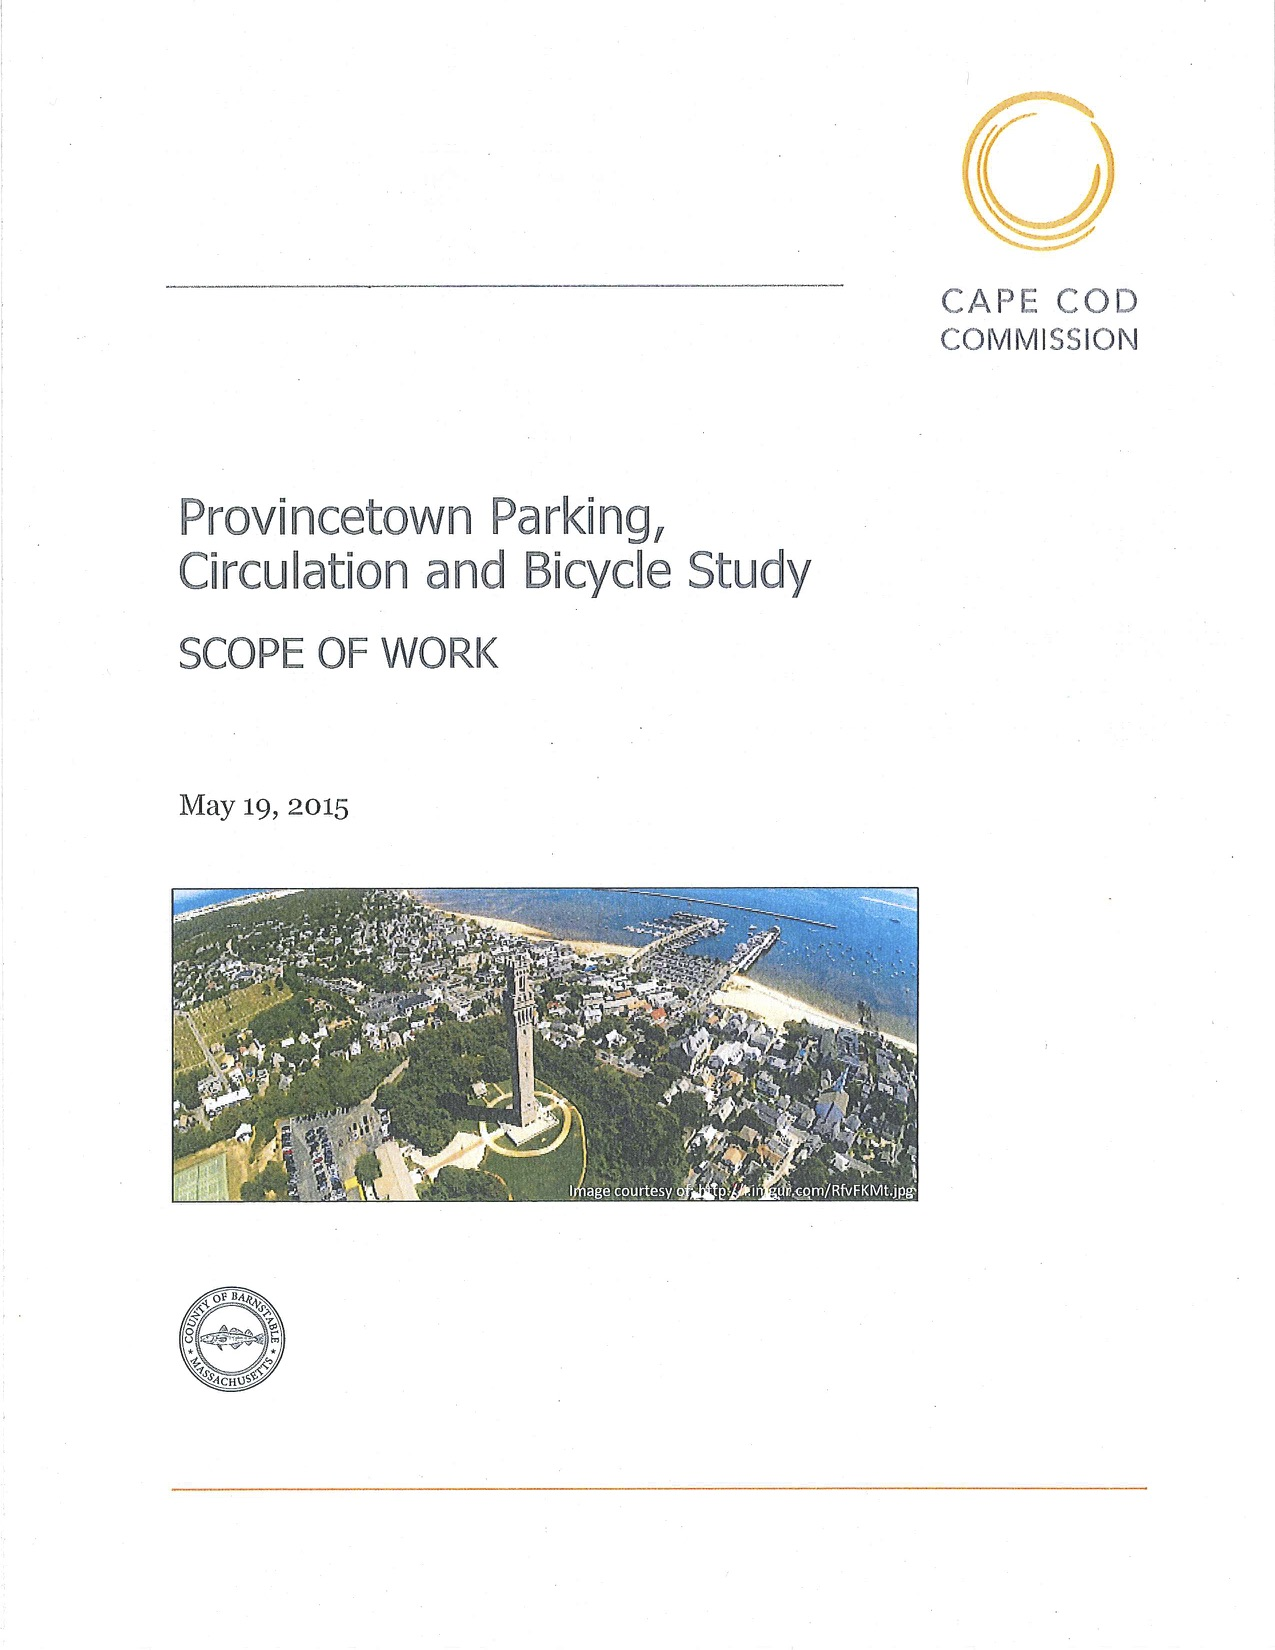 2015 Provincetown Parking, Circulation and Bicycle Study Scope of Work - cover